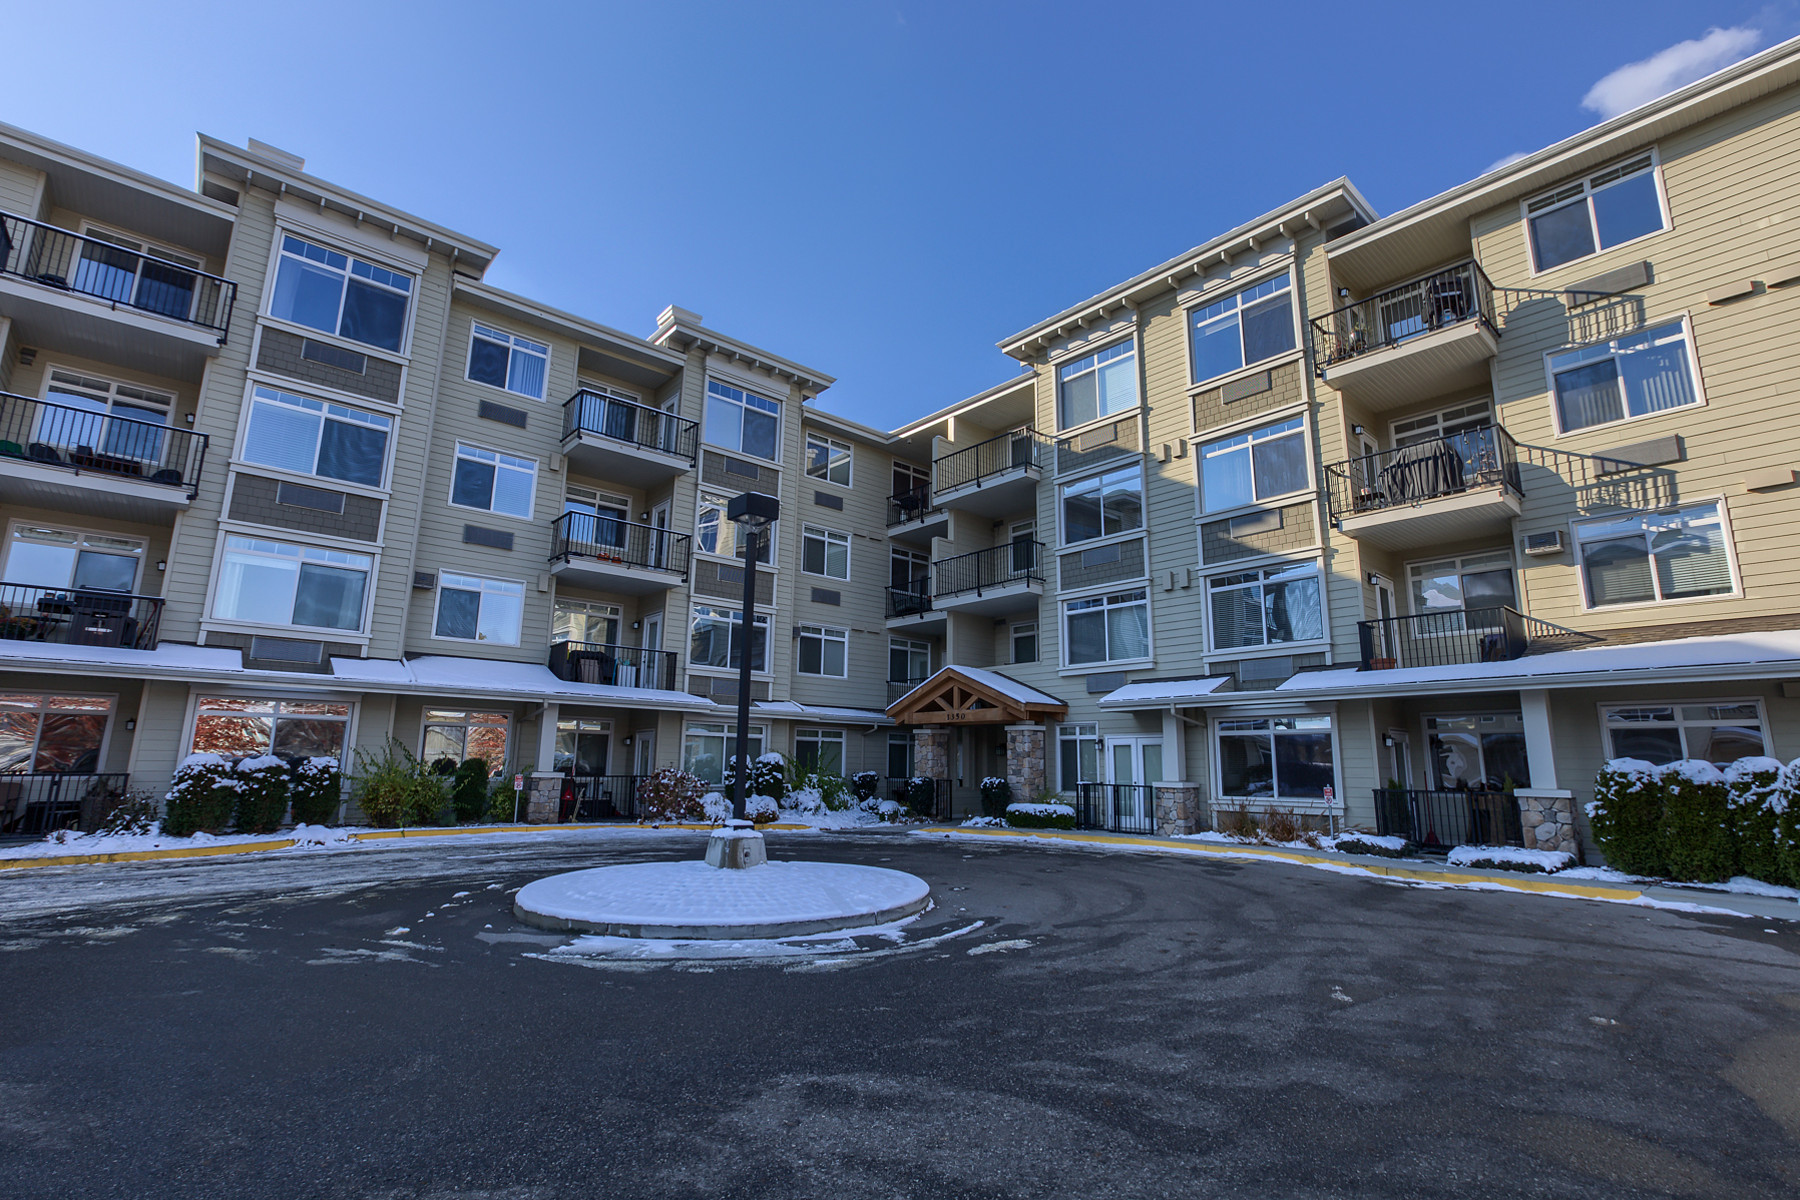 Apartamento por un Venta en Desirable One Bed One Bath 306-1350 Ridgeway Place, Kelowna, British Columbia, V1Y9T6 Canadá